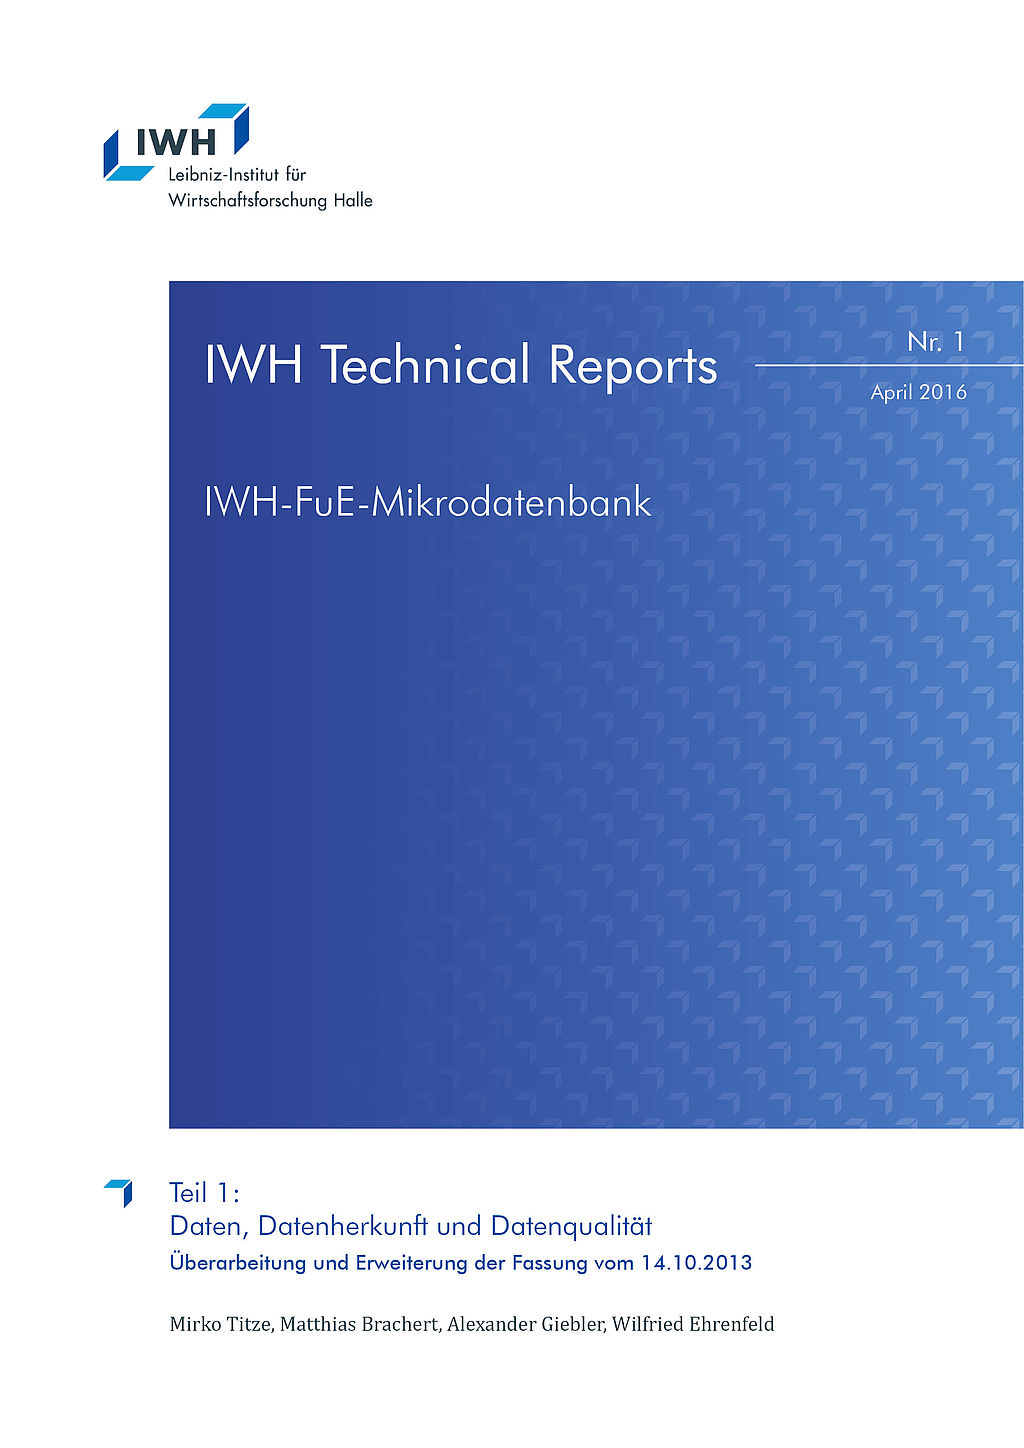 cover_iwh-technical-report_2016-01_d.jpg